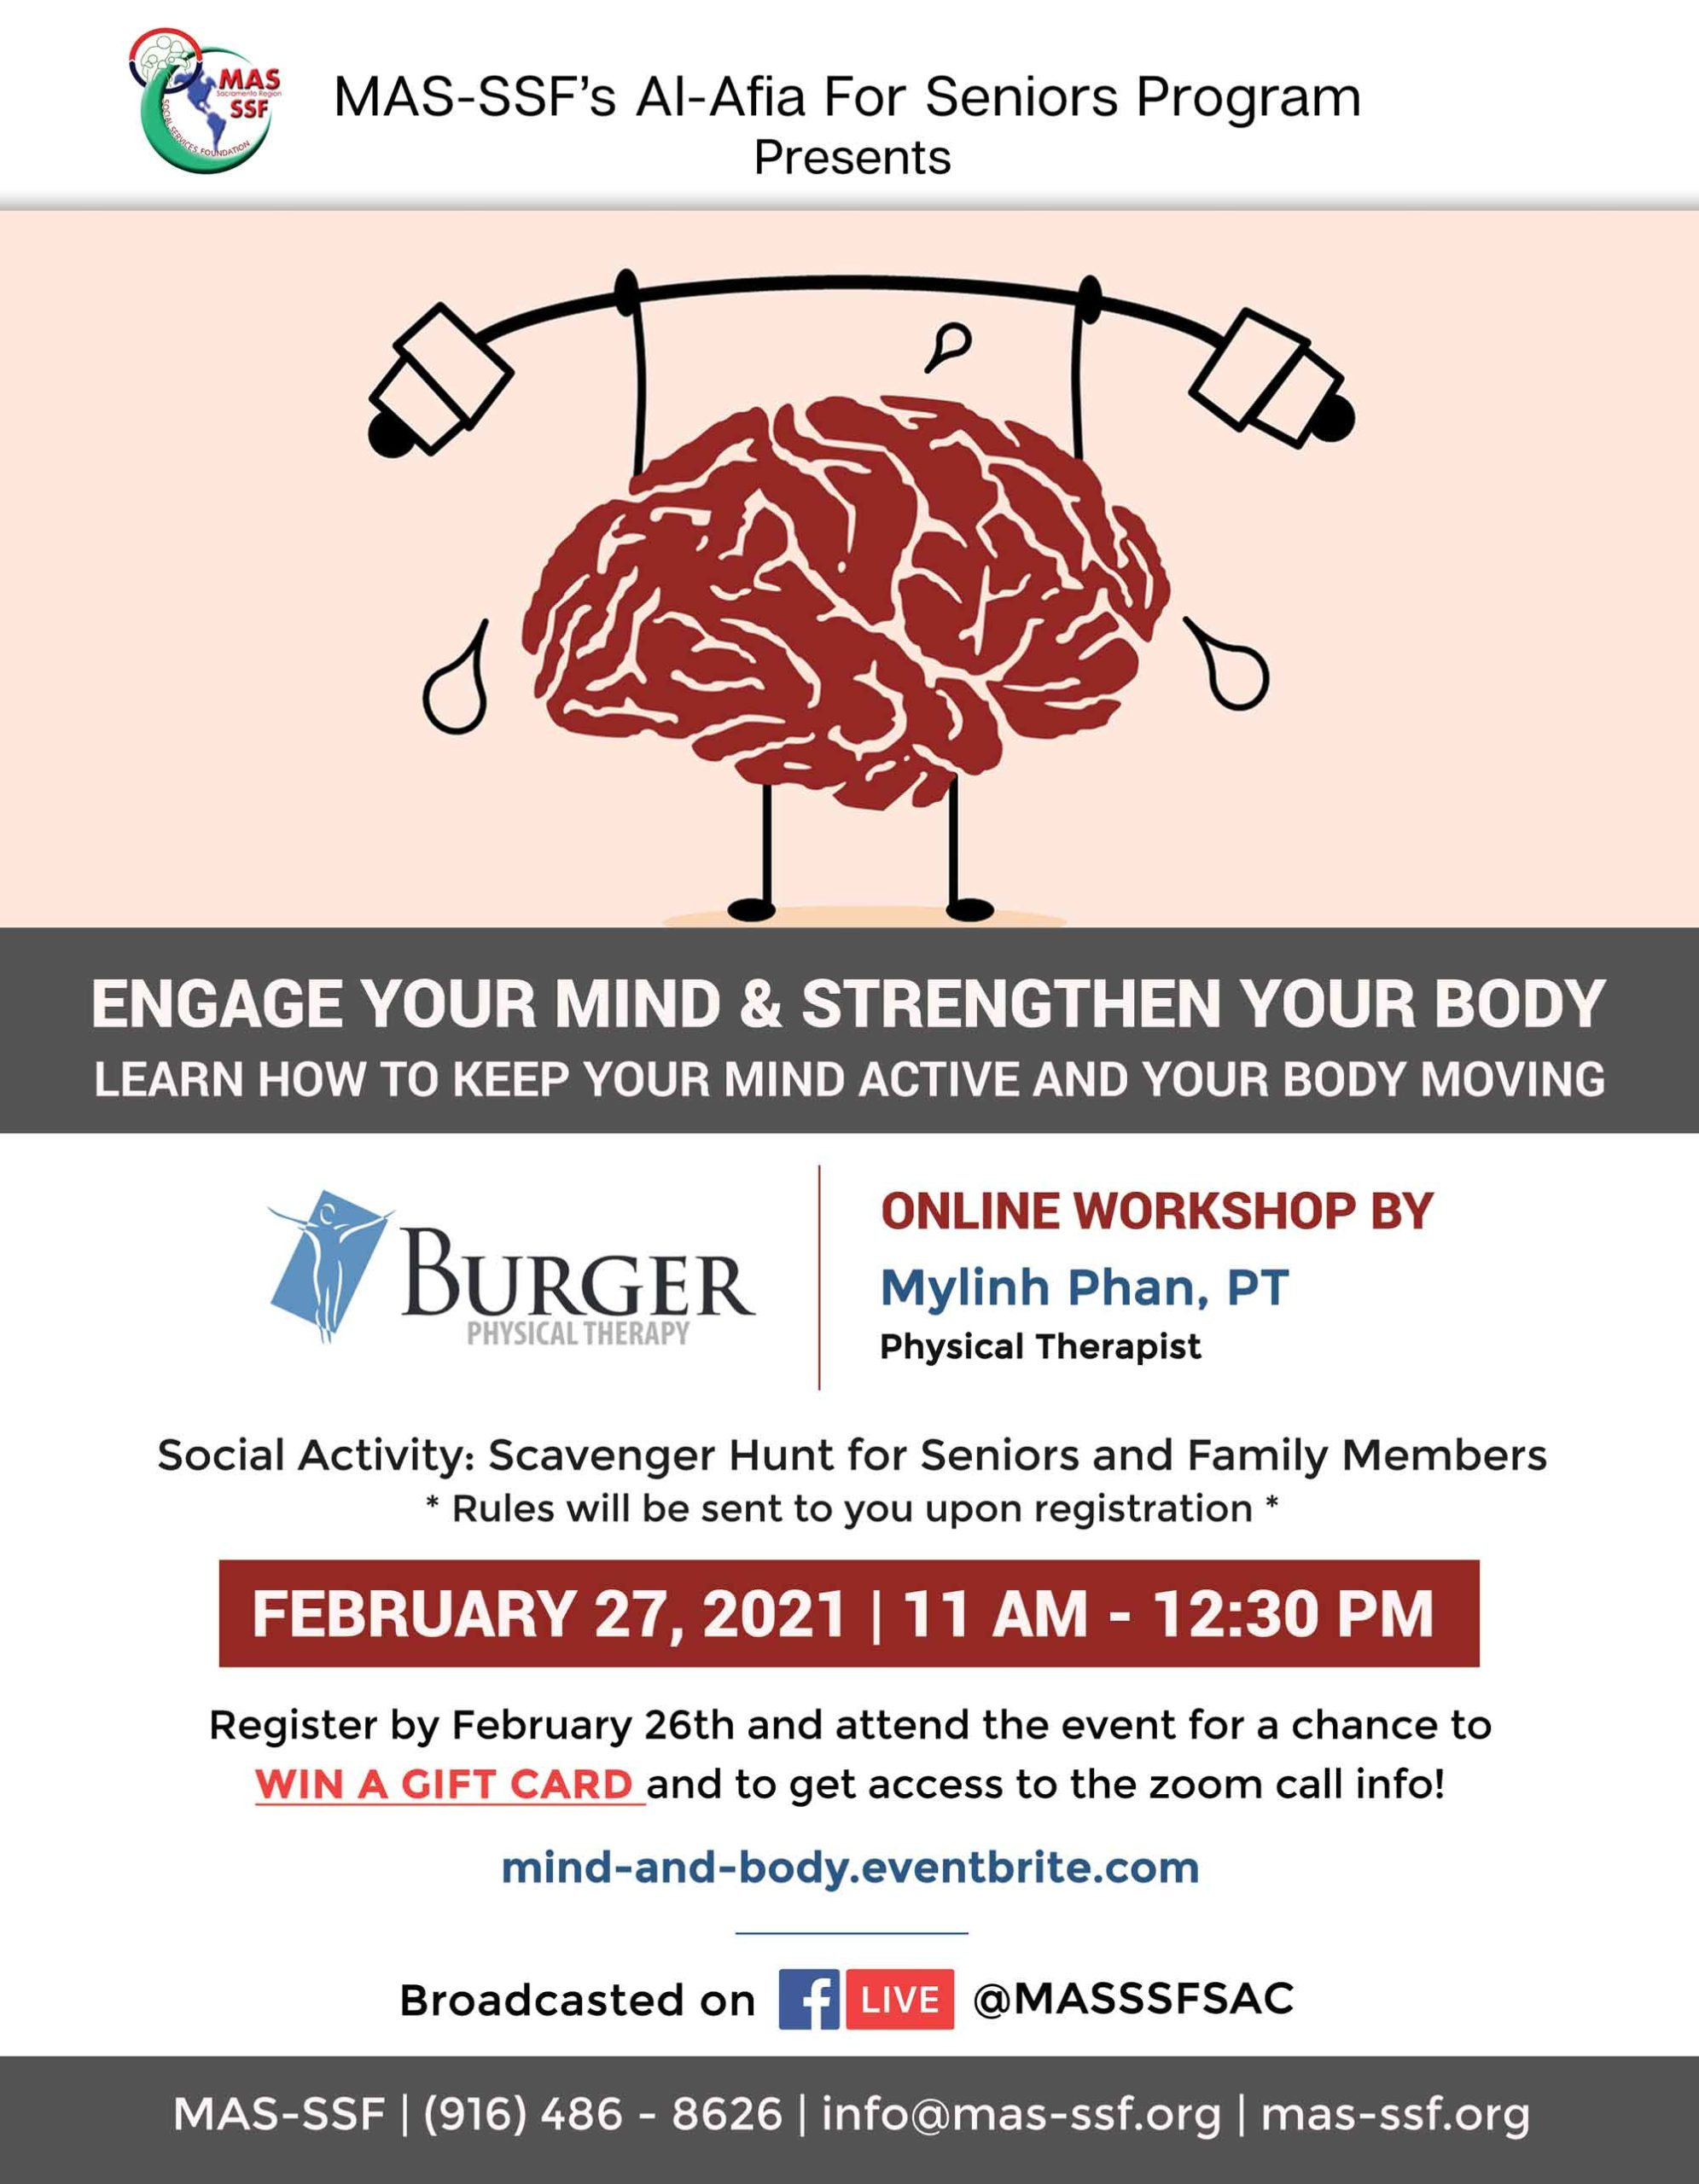 Engage Your Mind & Strengthen Your Body